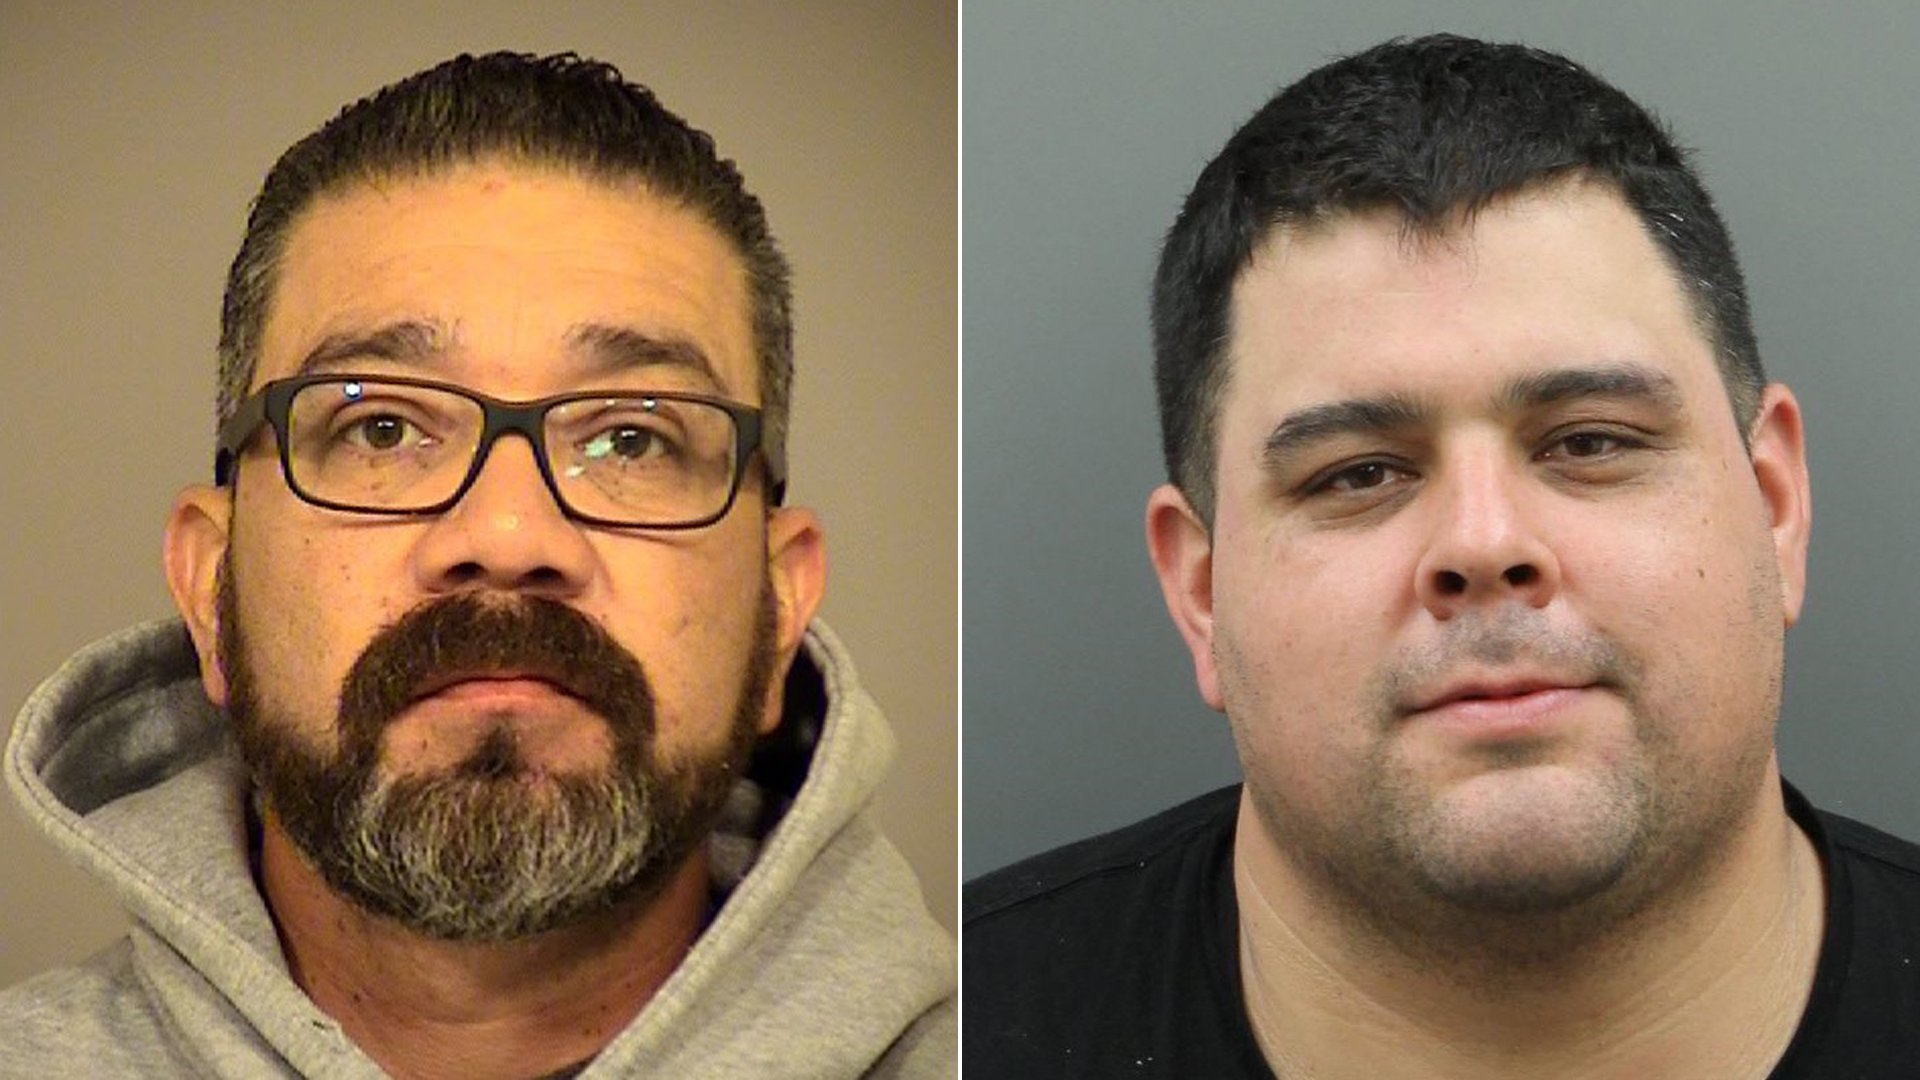 Gabriel Castro, 47 of Ventura, left, and Salvador Vargas, 34, of Santa Maria, pictured in photos released by the Santa Barbara County Sheriff's Office on Feb. 21, 2020.